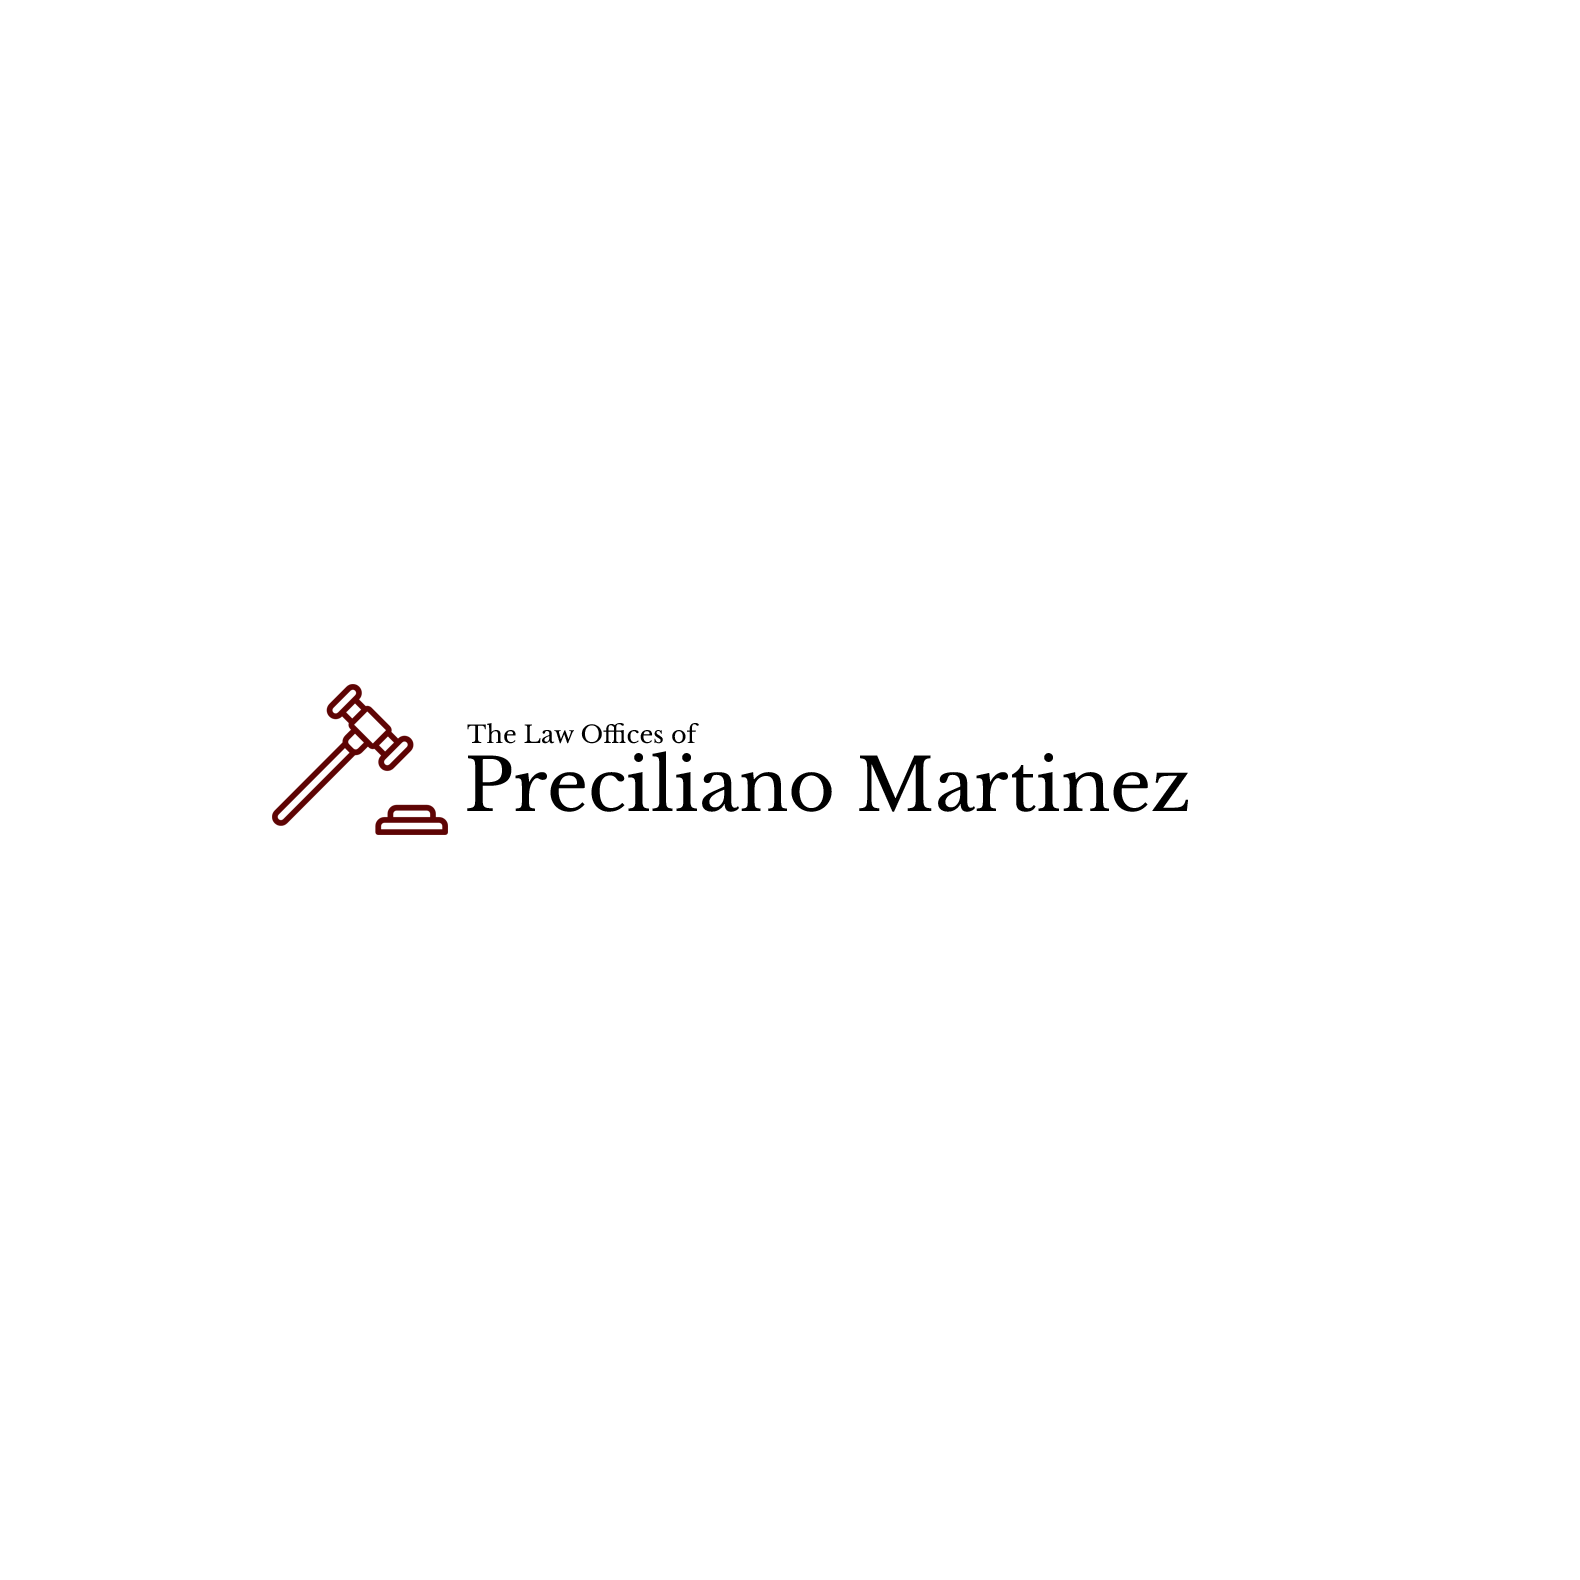 The Law Offices of Preciliano Martinez - Modesto, CA 95354 - (209)579-2206 | ShowMeLocal.com